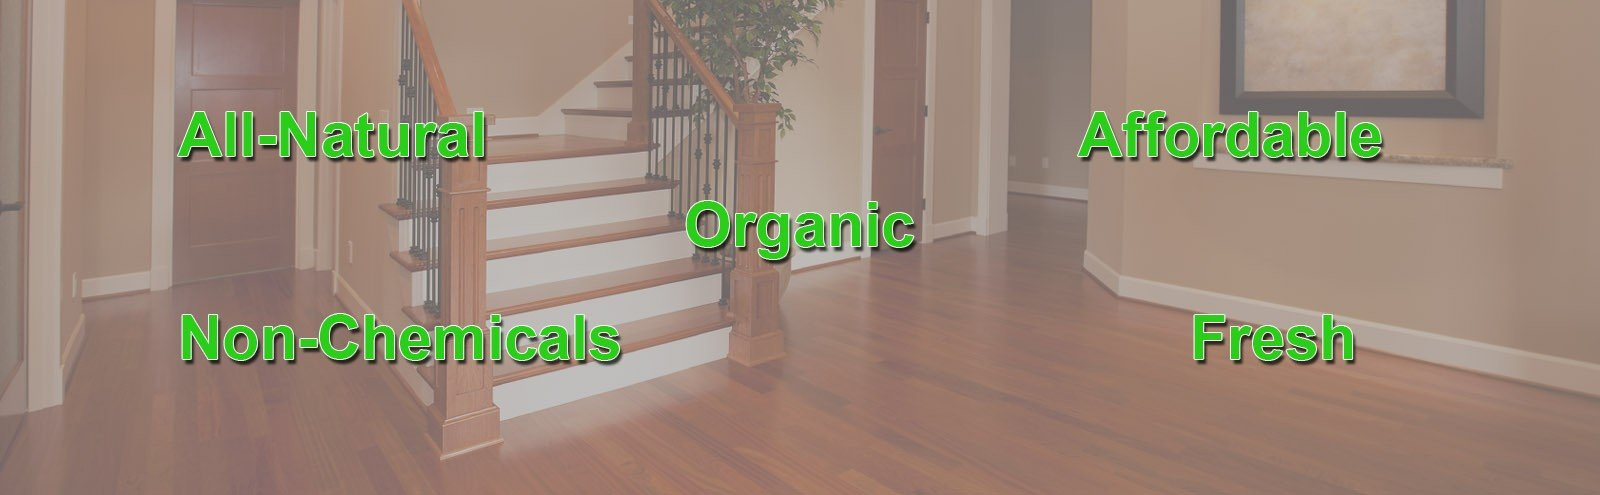 Dna Fresh Carpet Cleaning Restoration Cleaning Sevice In